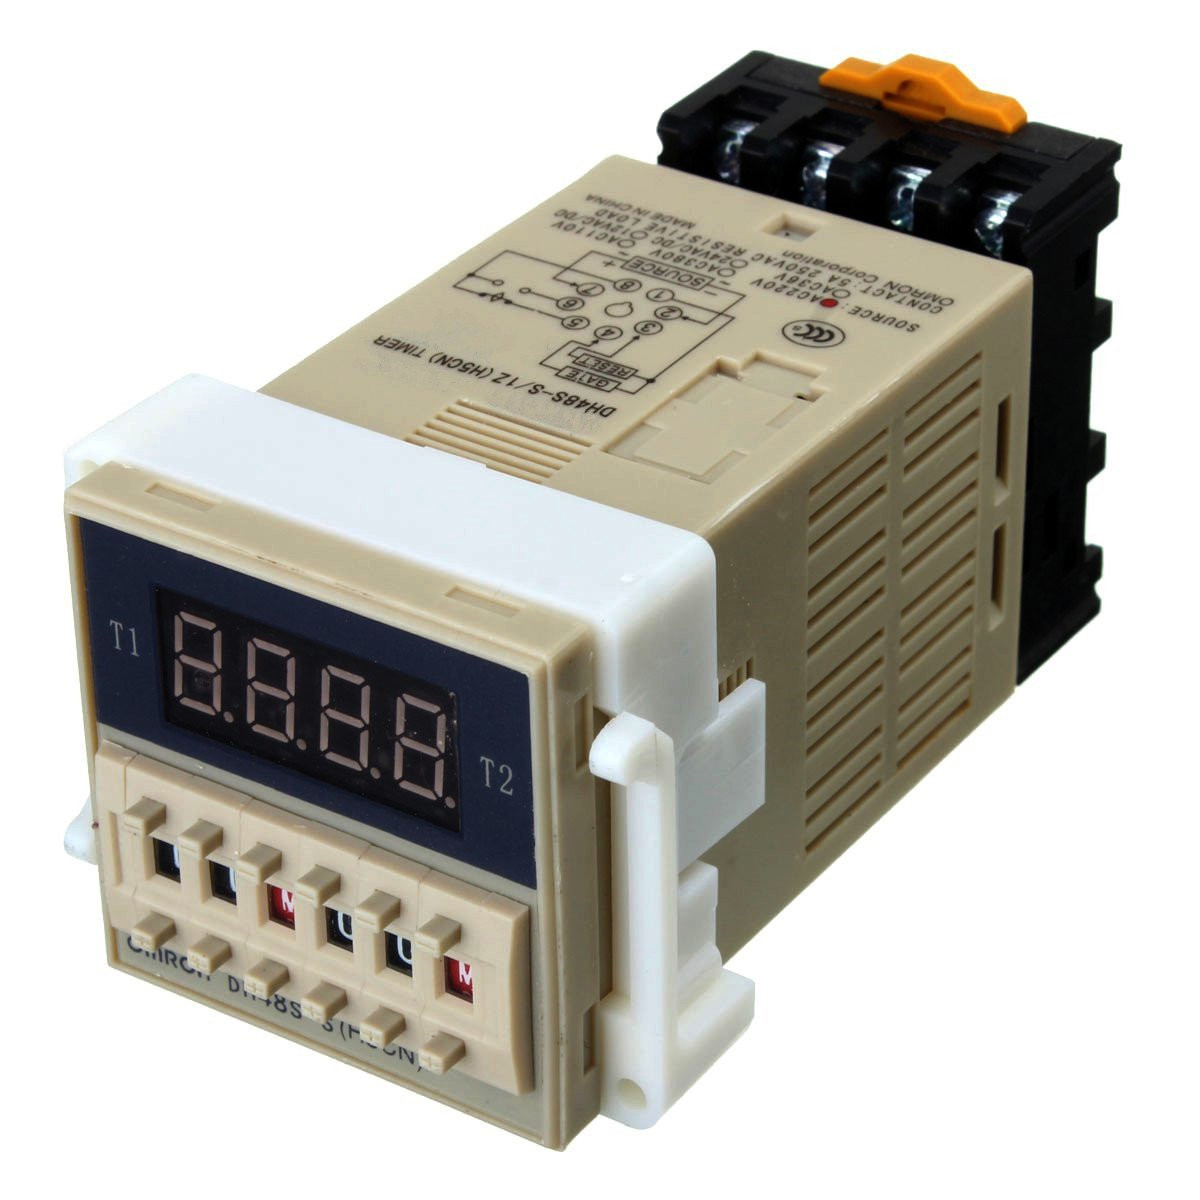 Useful AC 220V 5A Programmable Double Time Timer Delay Relay Device Tool DH48S-SUseful AC 220V 5A Programmable Double Time Timer Delay Relay Device Tool DH48S-S